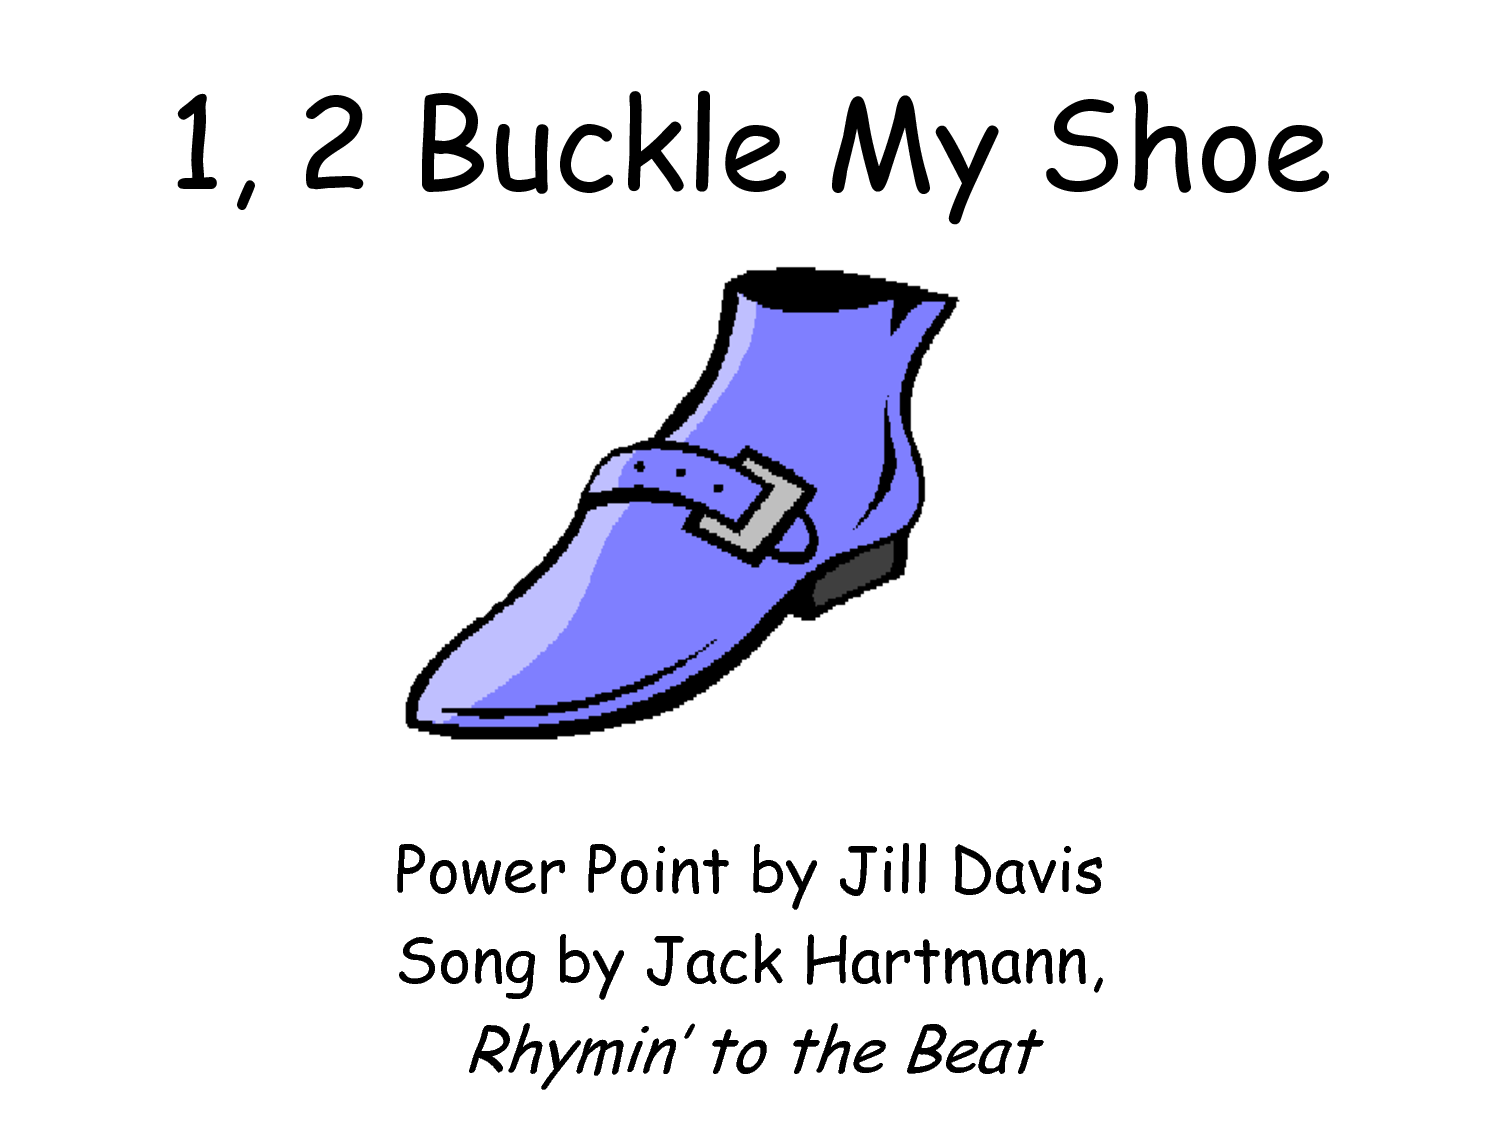 Buckle shoe clipart